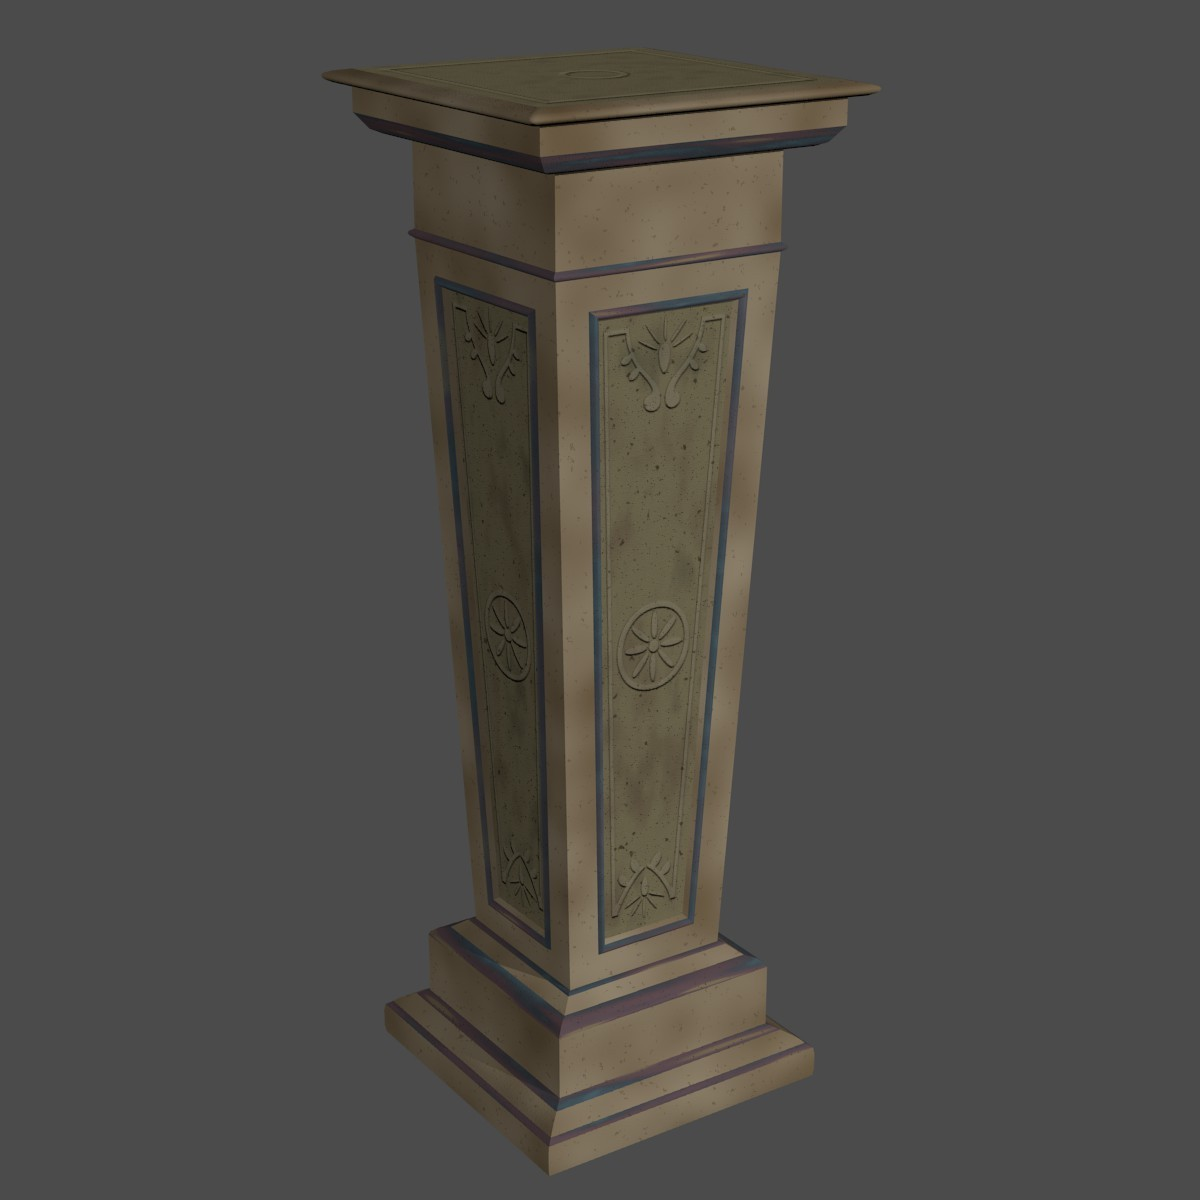 Decorative Stone Pillar By 1supermind 3docean